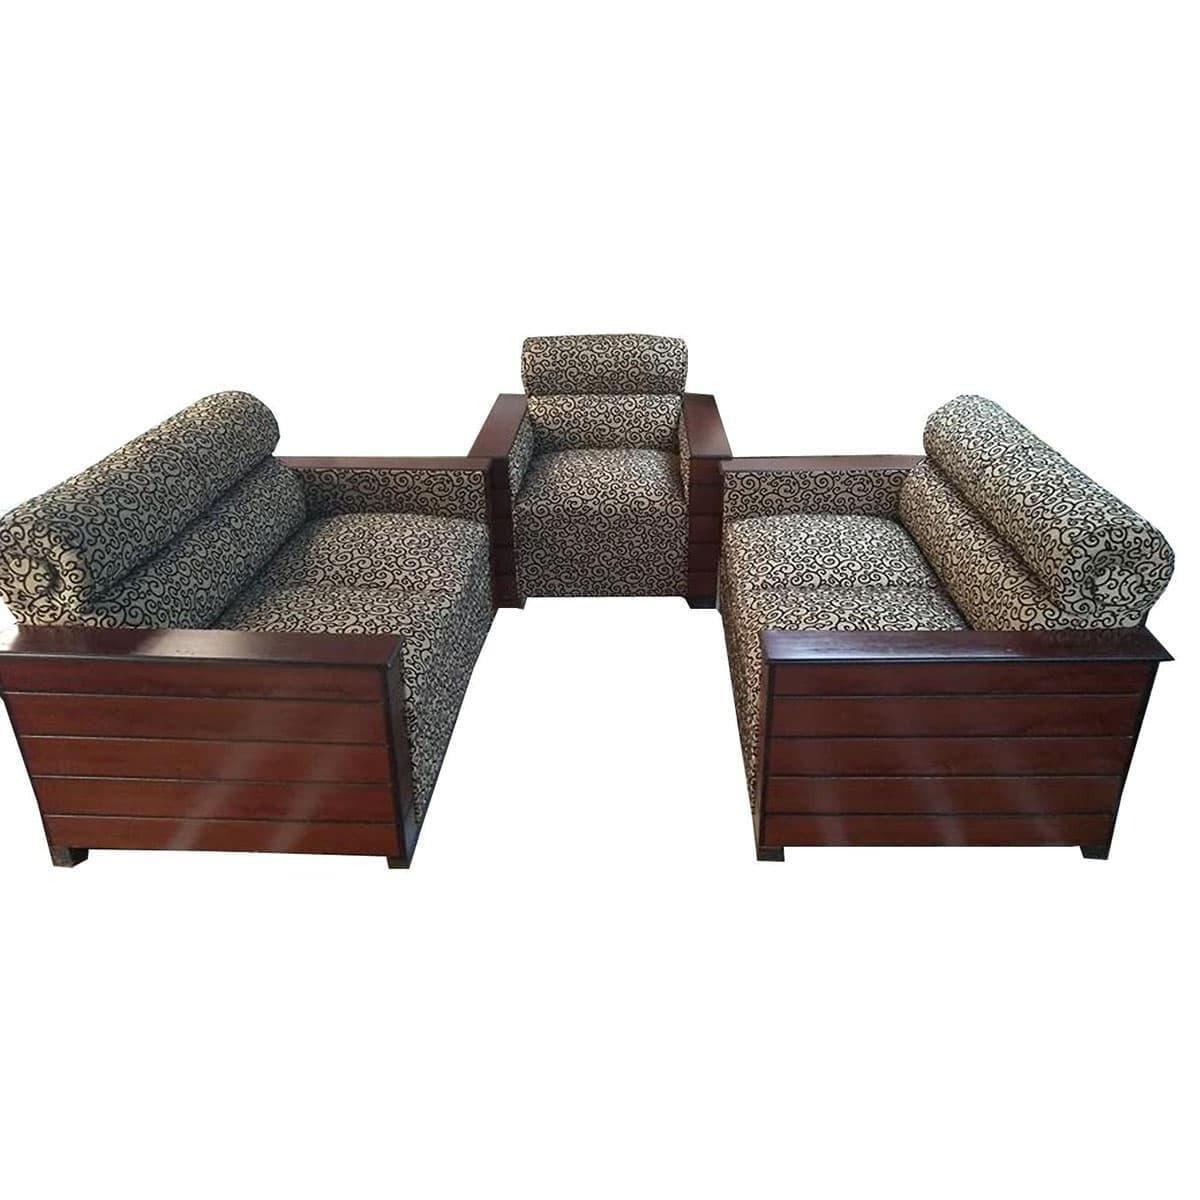 Superb Sa 389 Box Design Wooden Sofa Set Brown And Black Caraccident5 Cool Chair Designs And Ideas Caraccident5Info